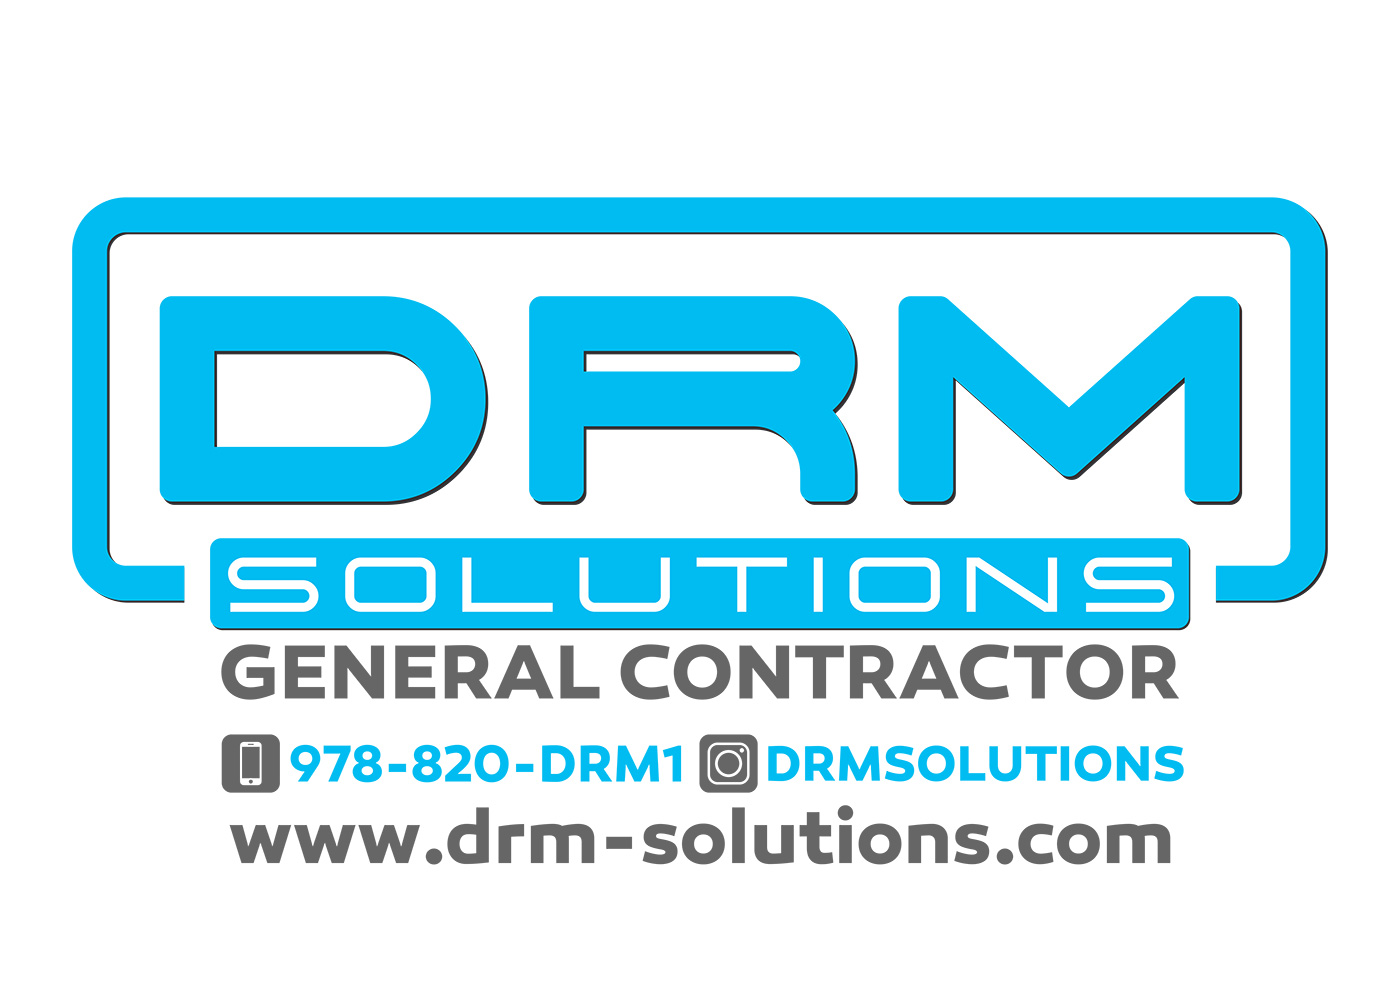 DRM SOLUTIONS Contractor & Building Maintenance providing Residential Commercial General Construction, Property Management Services, Apartment & Shared Unit Rentals and more.